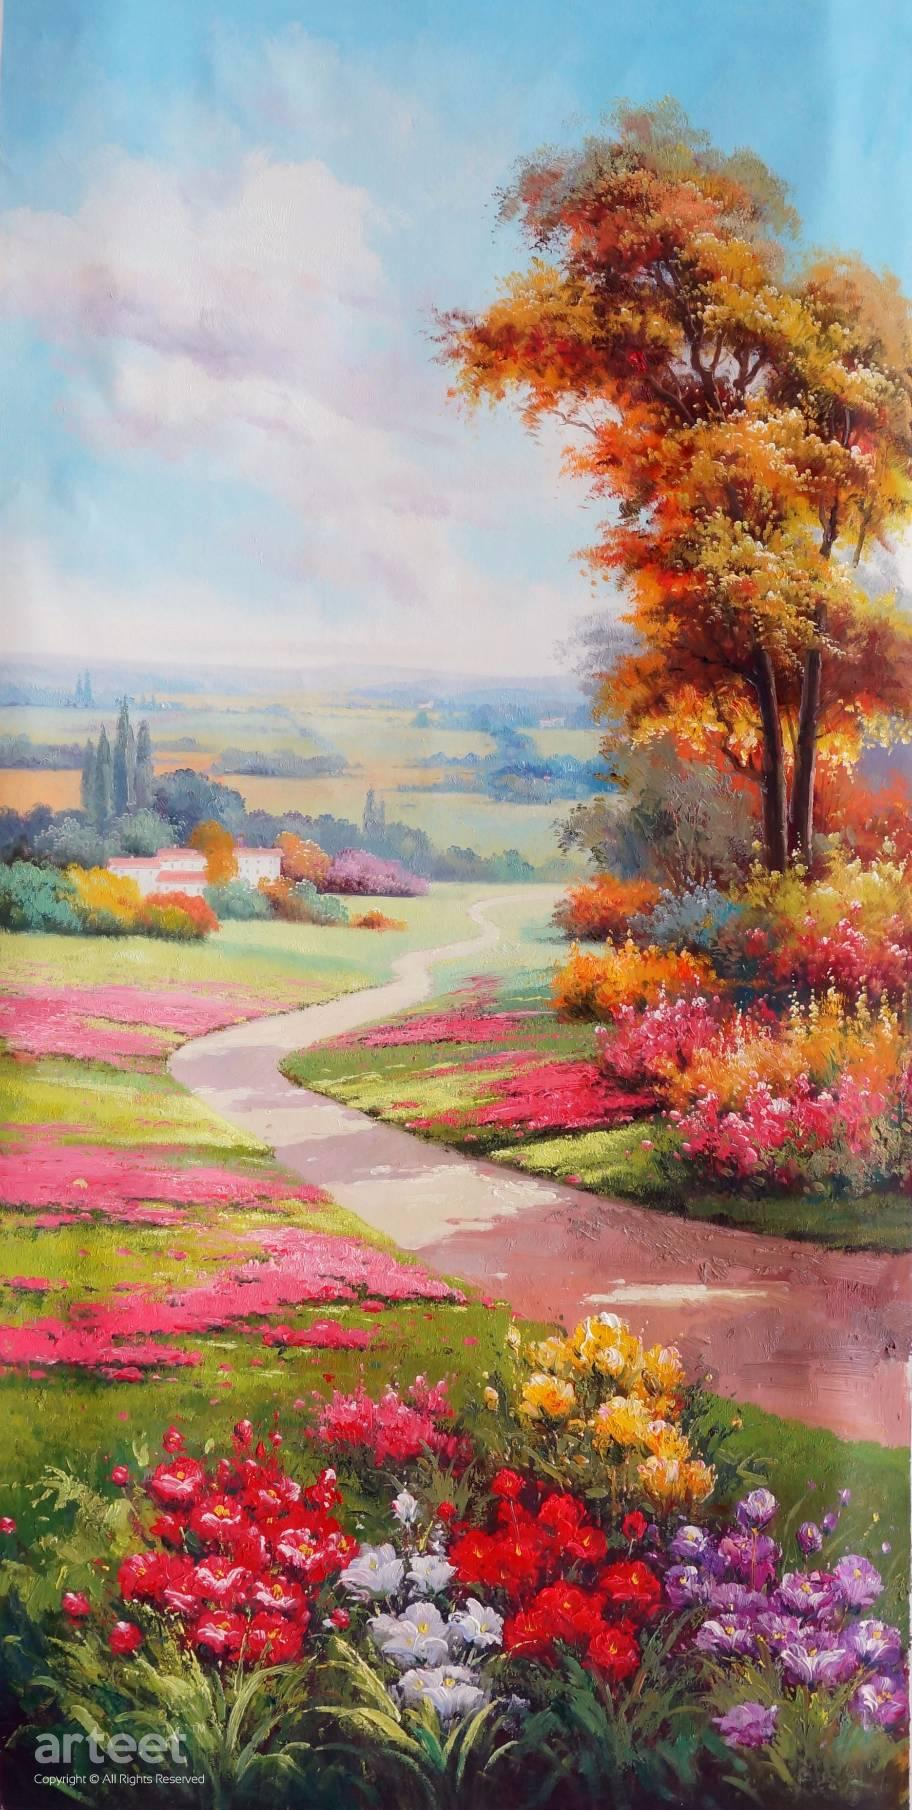 early autumn Mercer johnny - early autumn lyrics mercer johnny miscellaneous early autumn early autumn when an early autumn walks the land and chills the breeze and touches with her han.